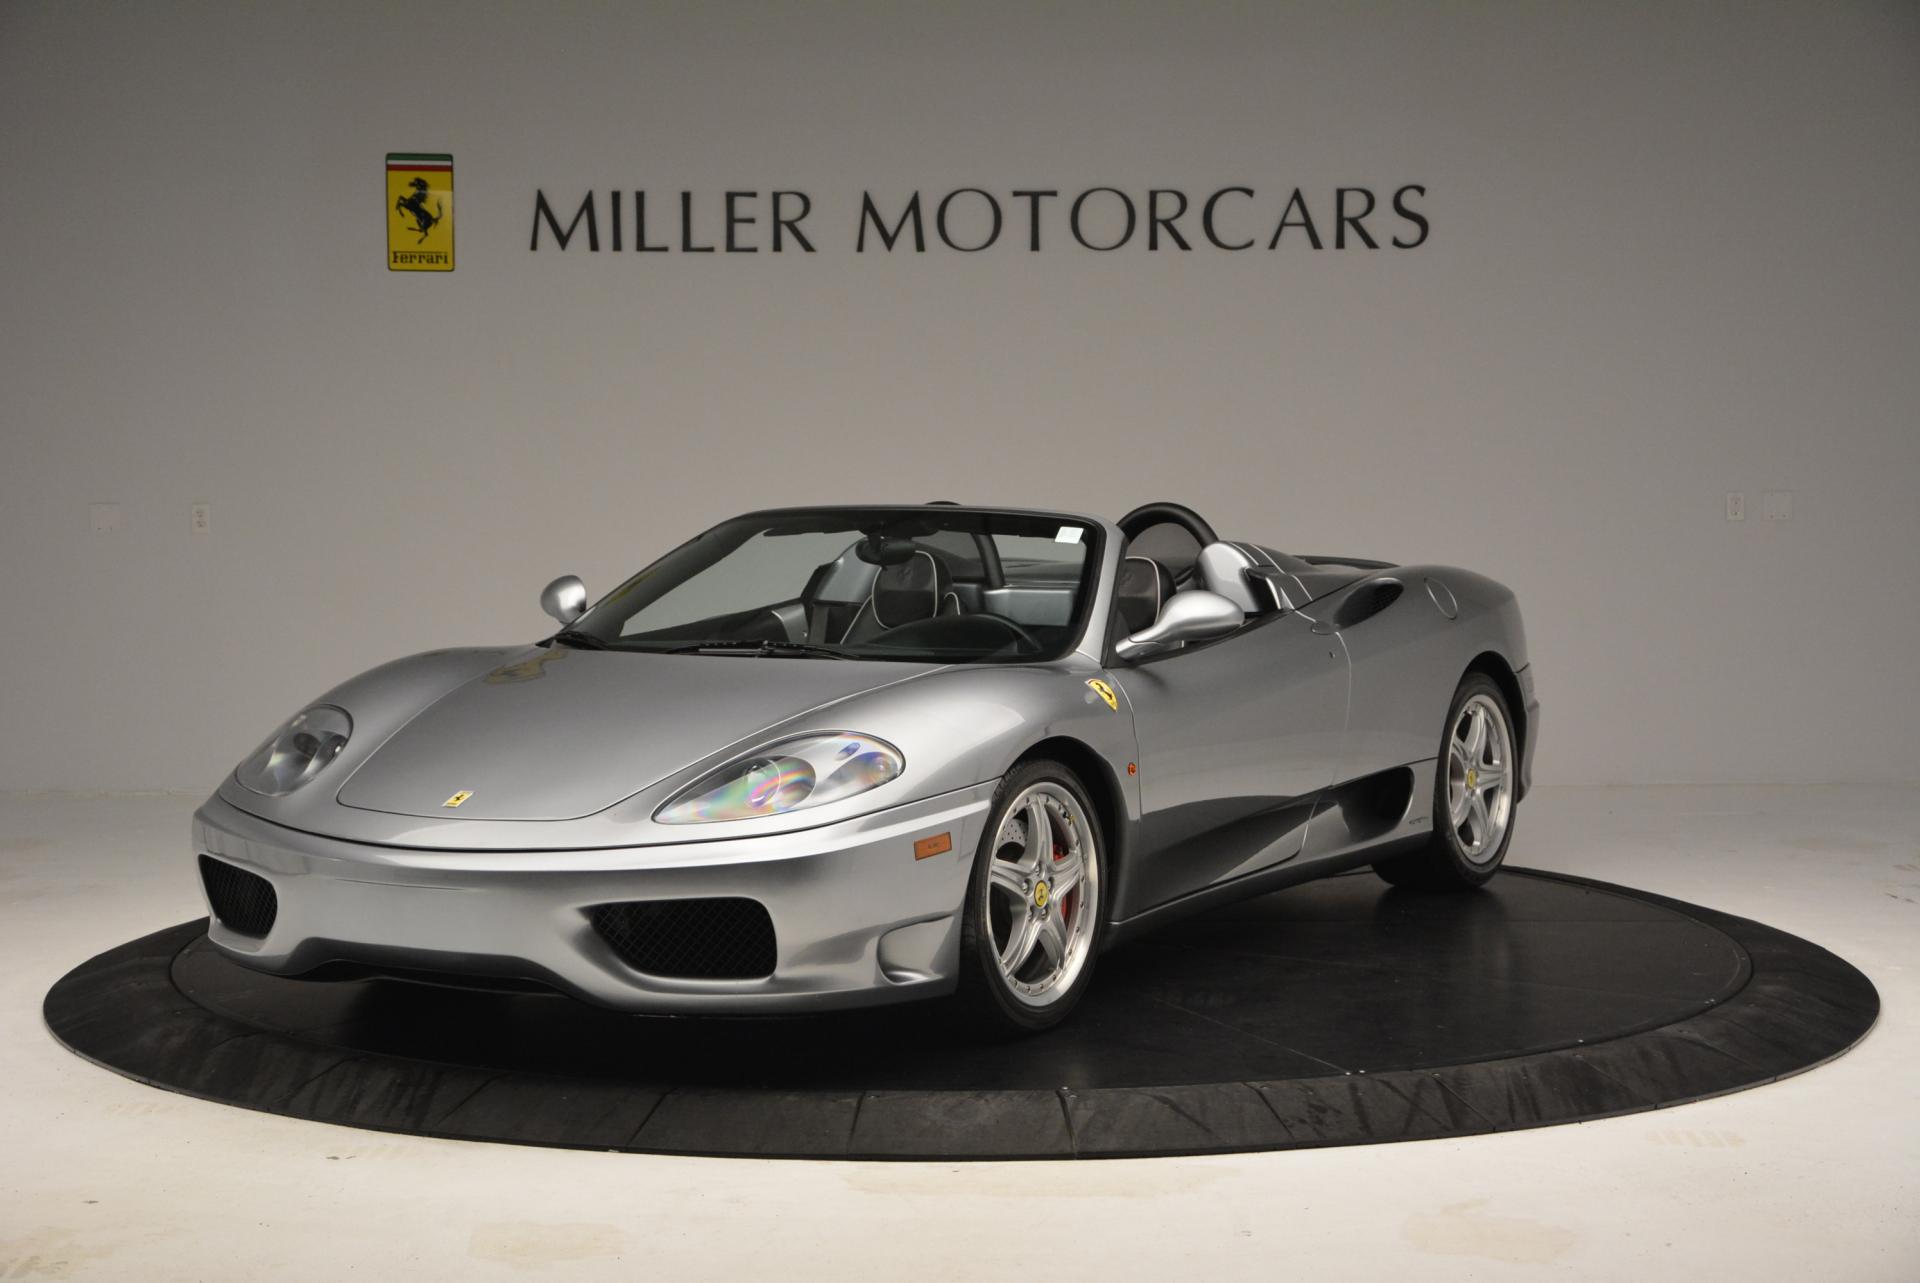 Used 2004 Ferrari 360 Spider 6-Speed Manual for sale Sold at Bentley Greenwich in Greenwich CT 06830 1